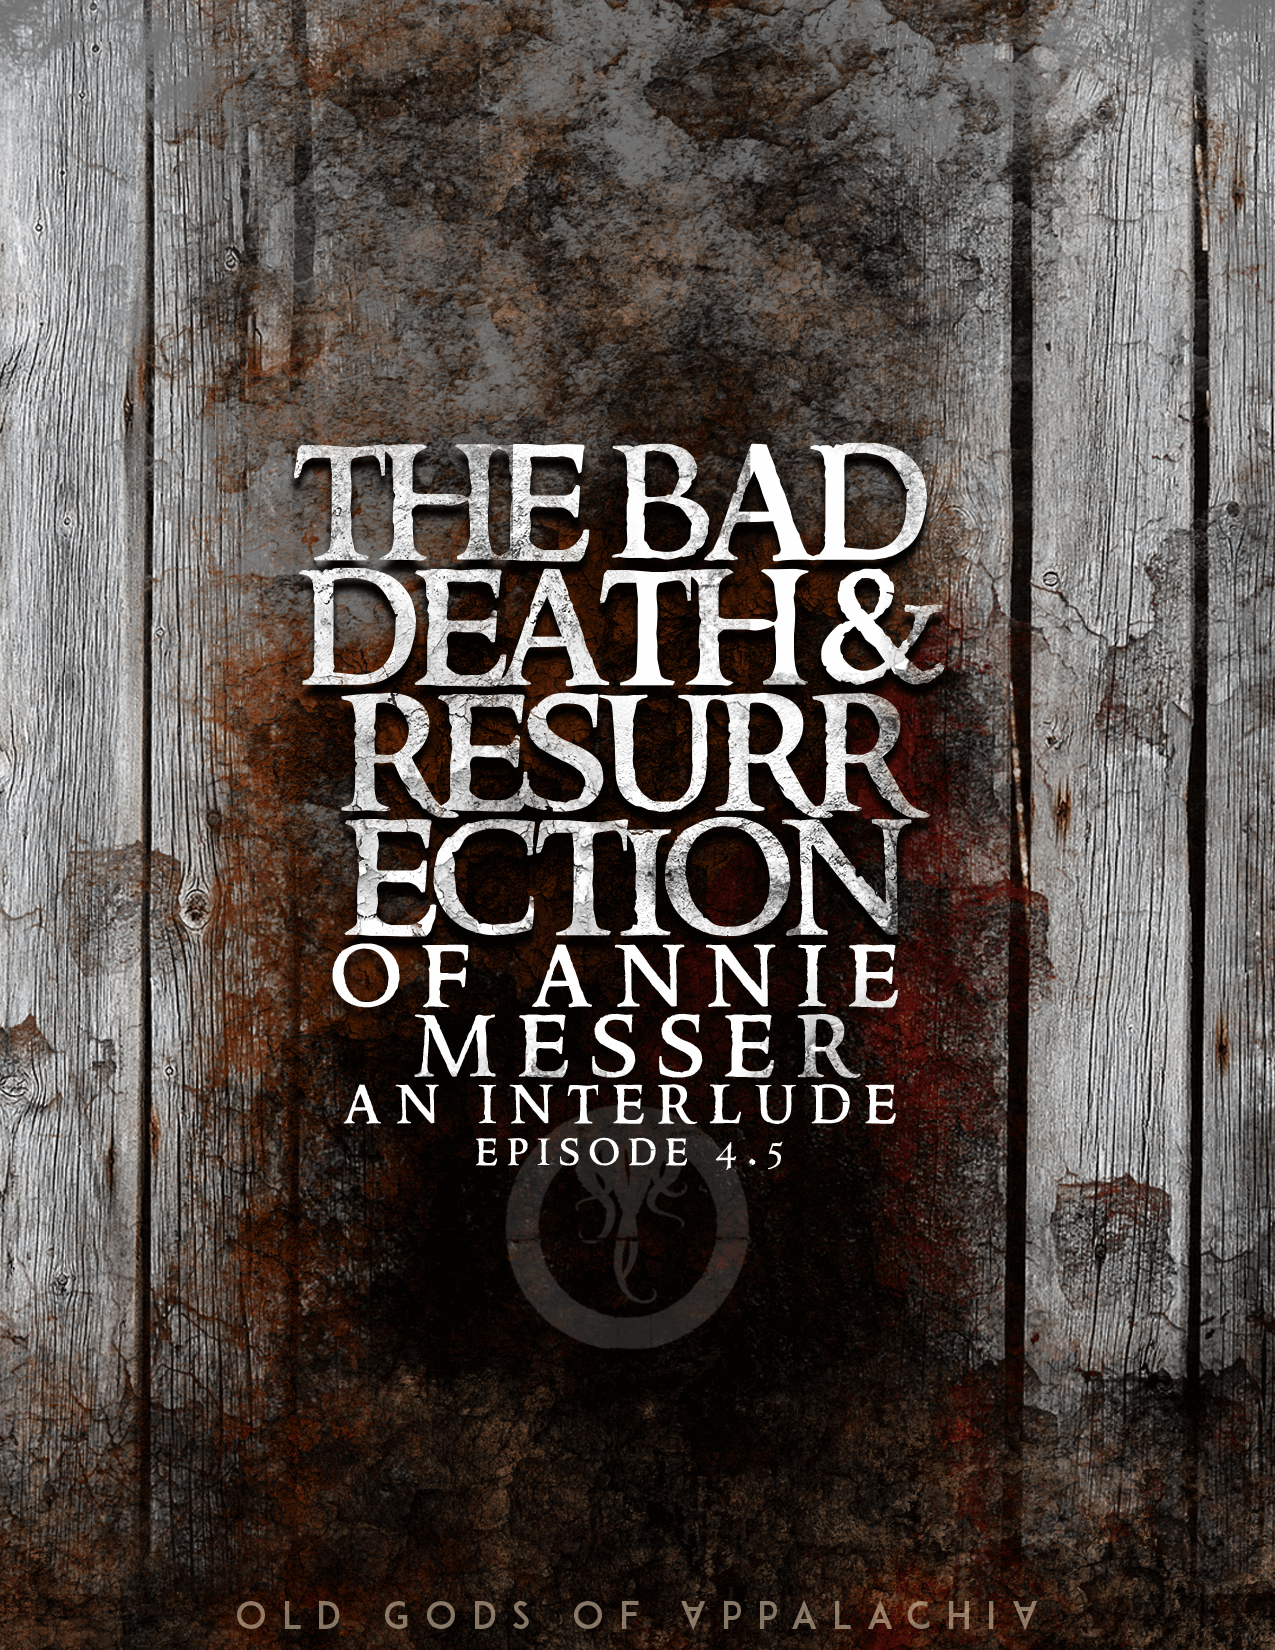 Episode 4.5: The Bad Death and Resurrection of Annie Messer